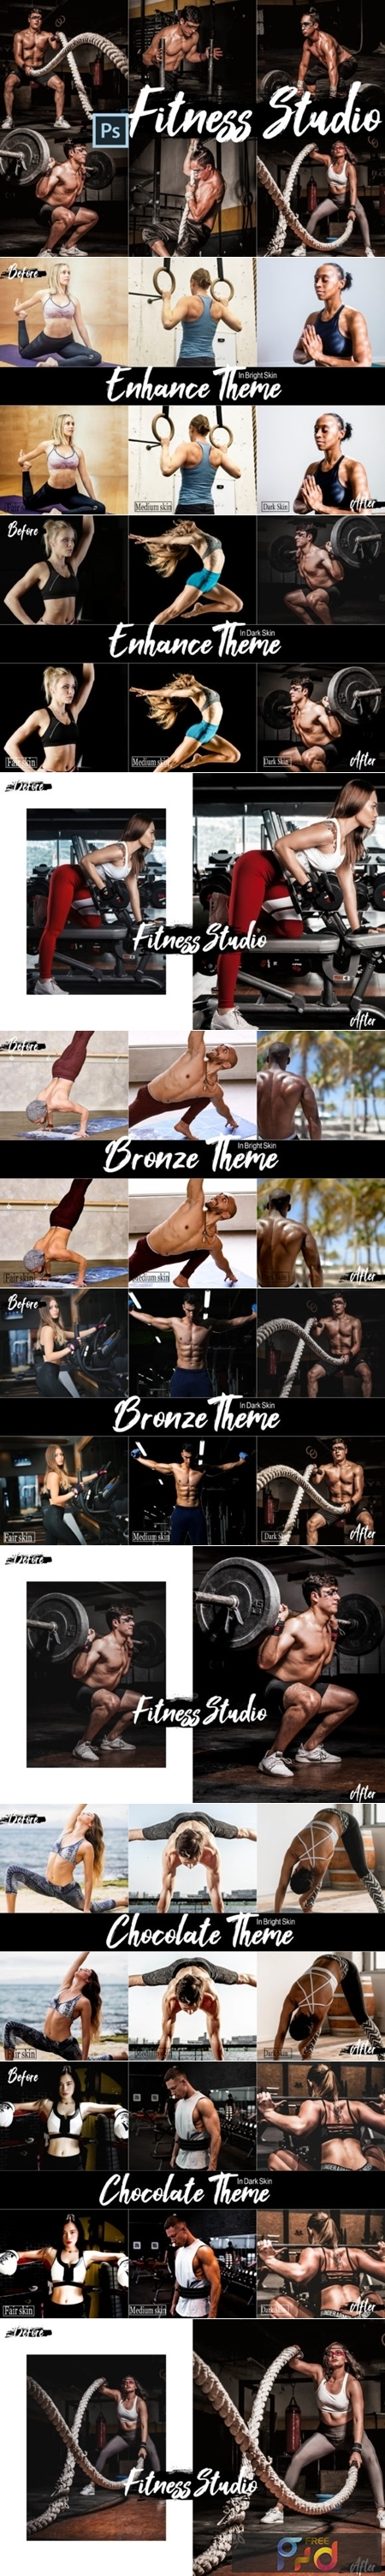 18 Fitness Studio Photoshop Actions 2449418 1